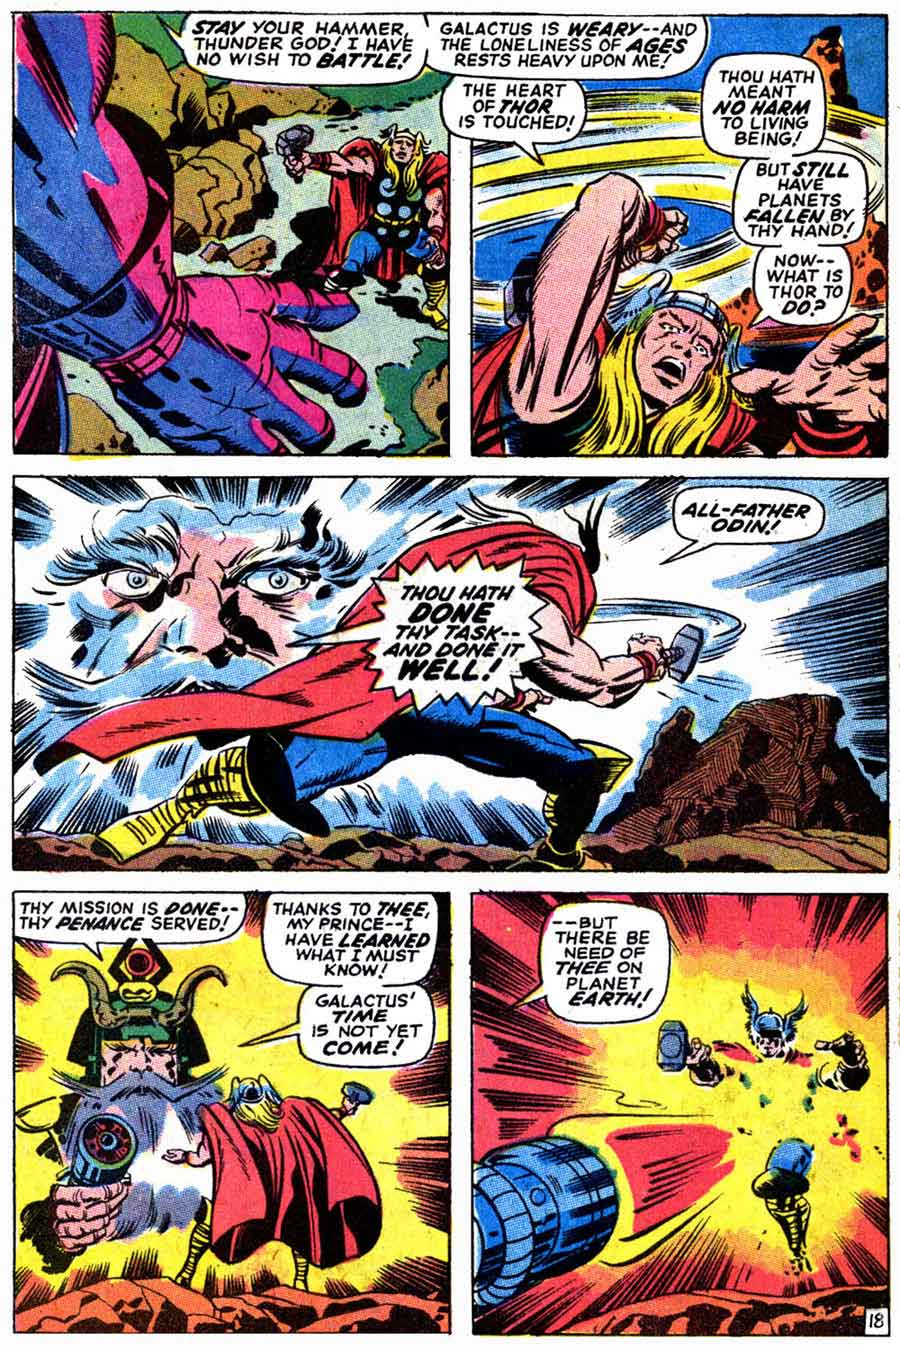 Thor v1 #169 marvel silver age comic book page art by Jack Kirby